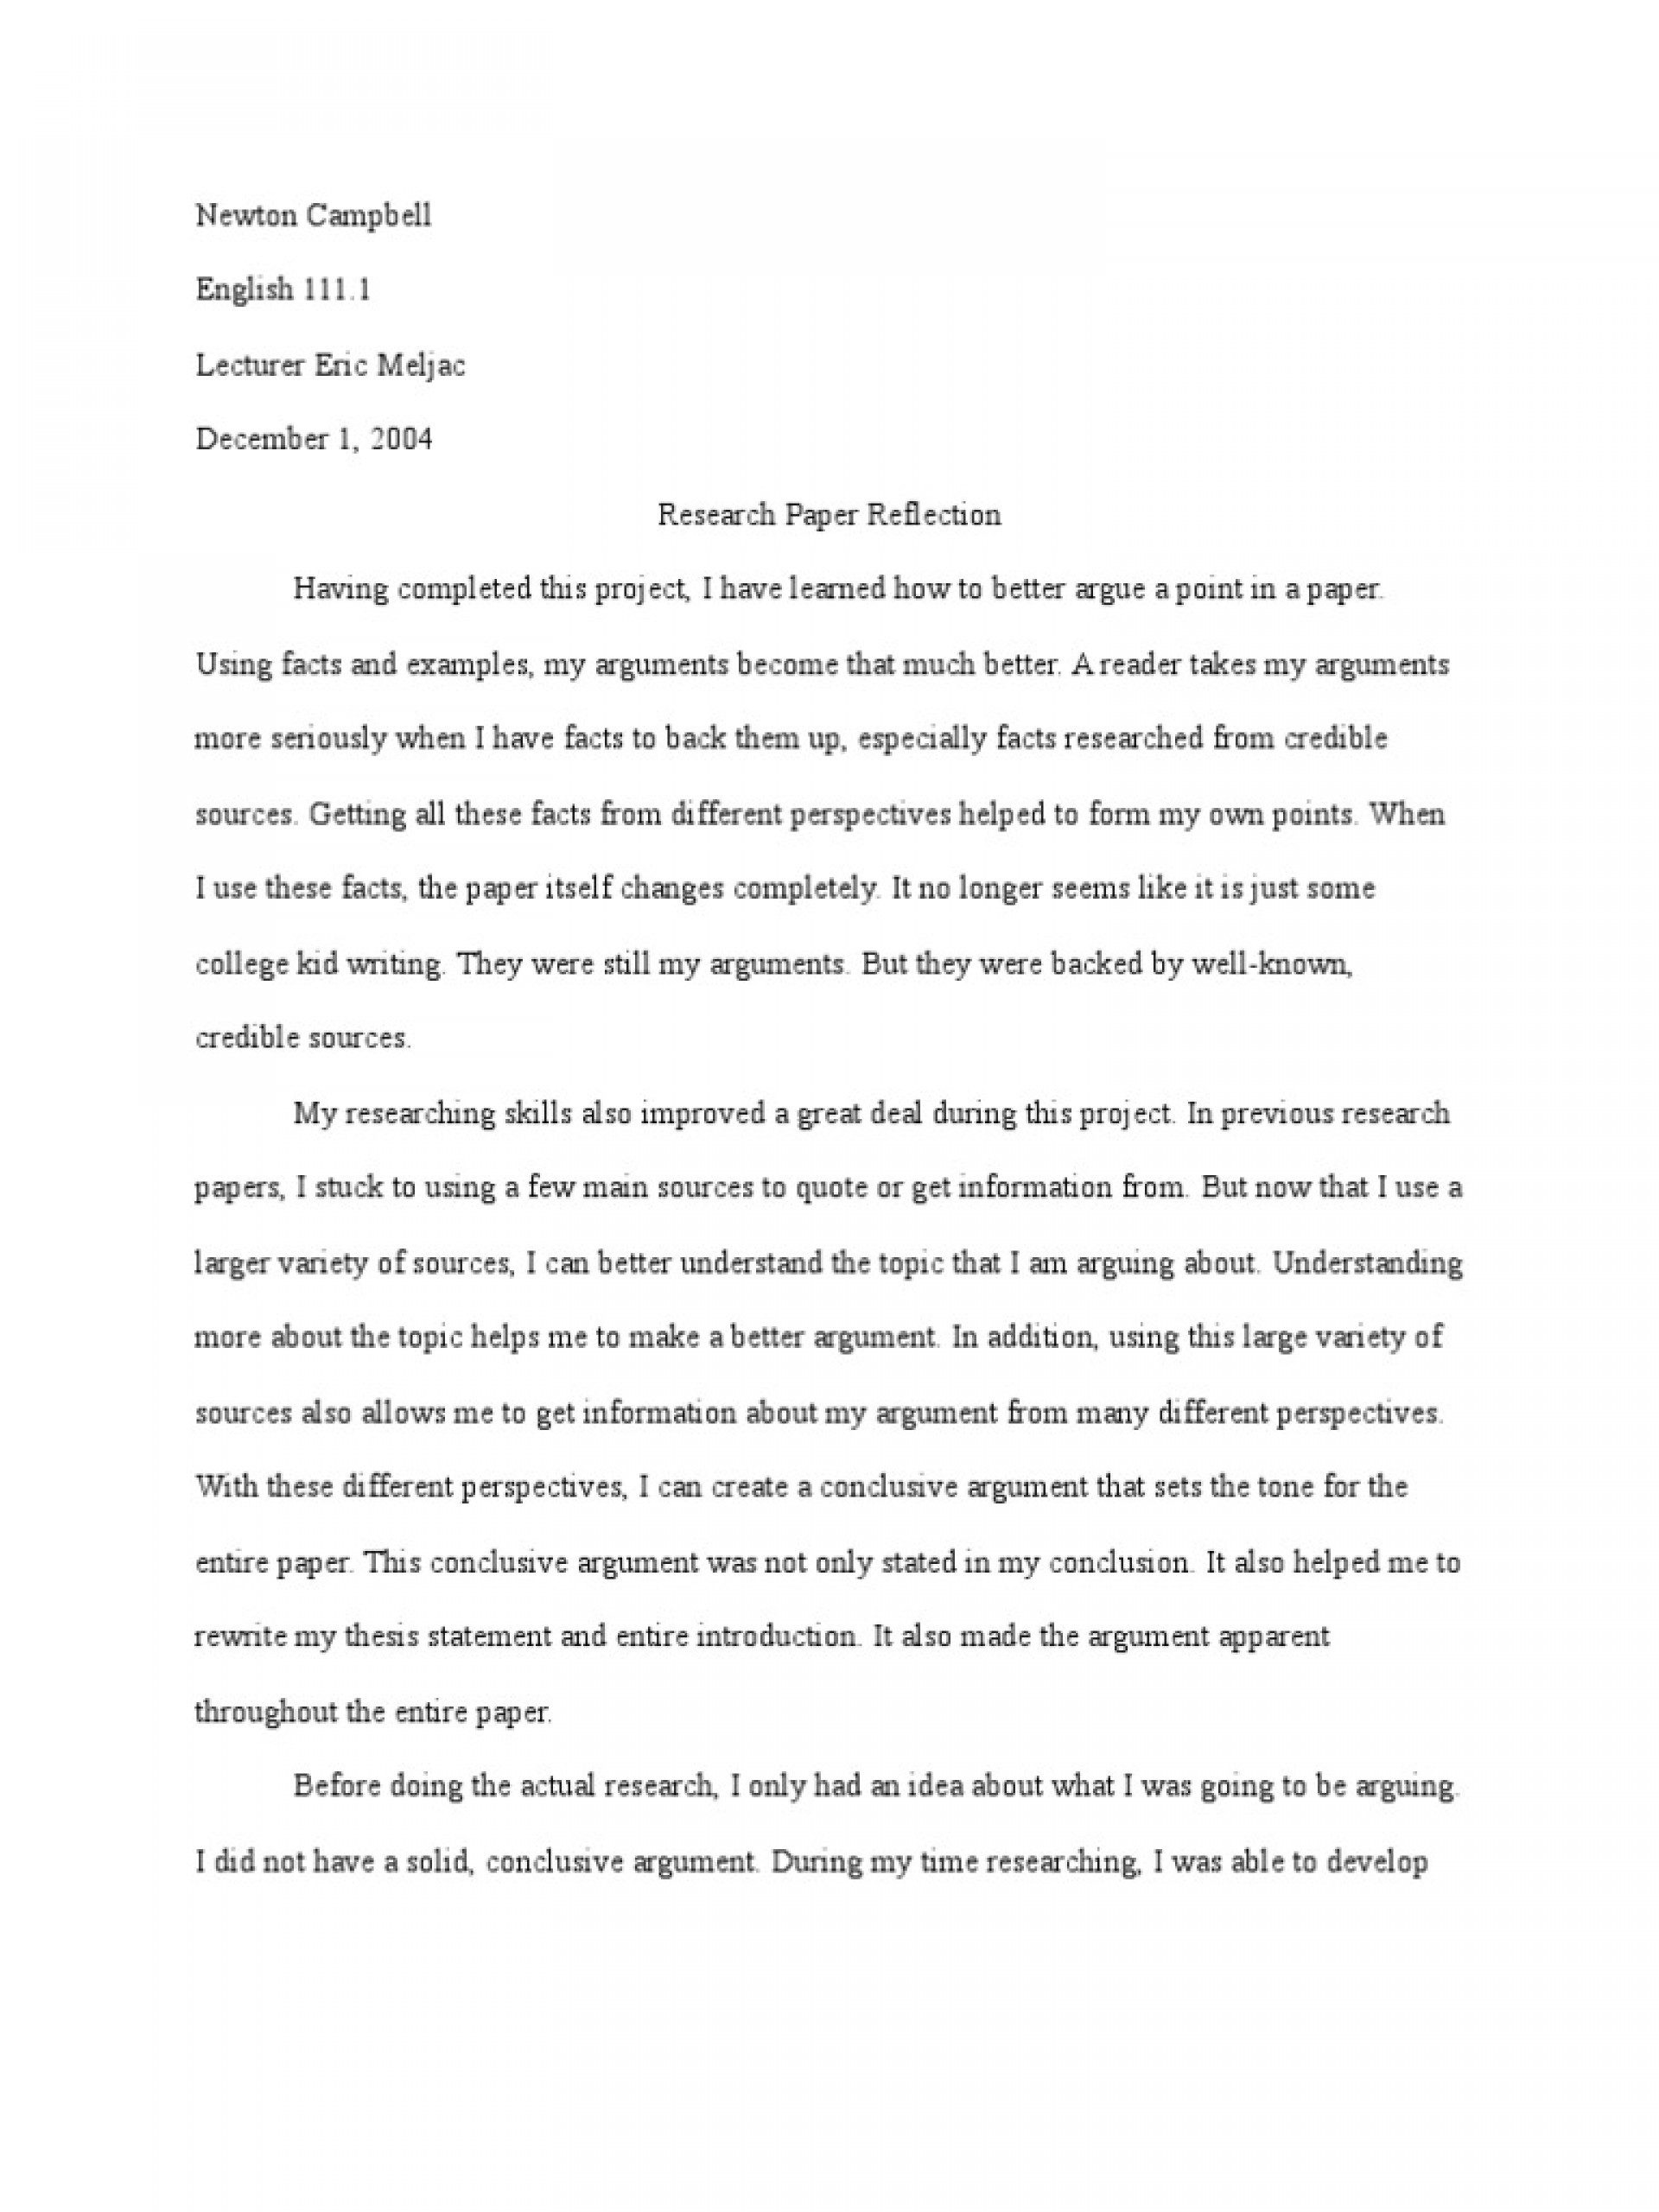 Community service reflection paper essay